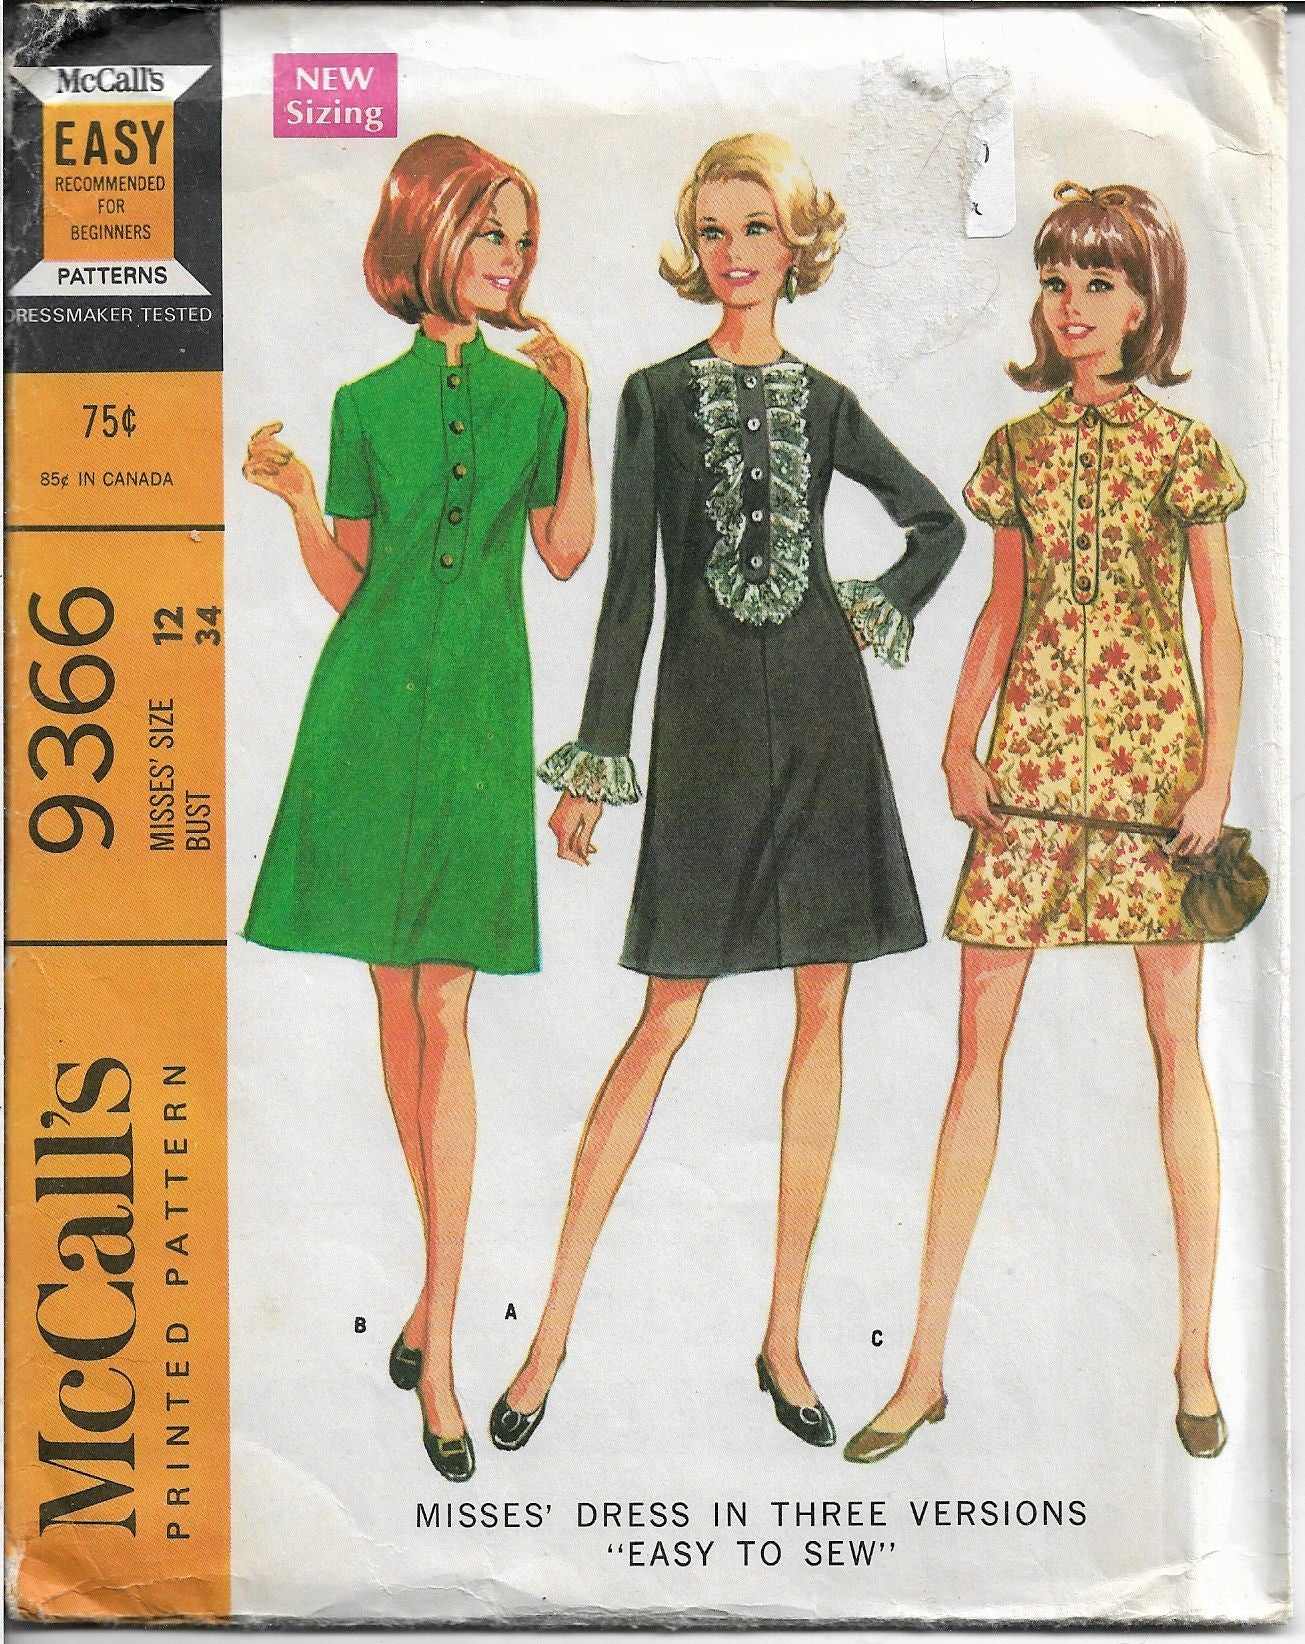 McCalls 9366 Ladies Dress Easy To Sew Vintage Sewing Pattern 1960s - VintageStitching - Vintage Sewing Patterns